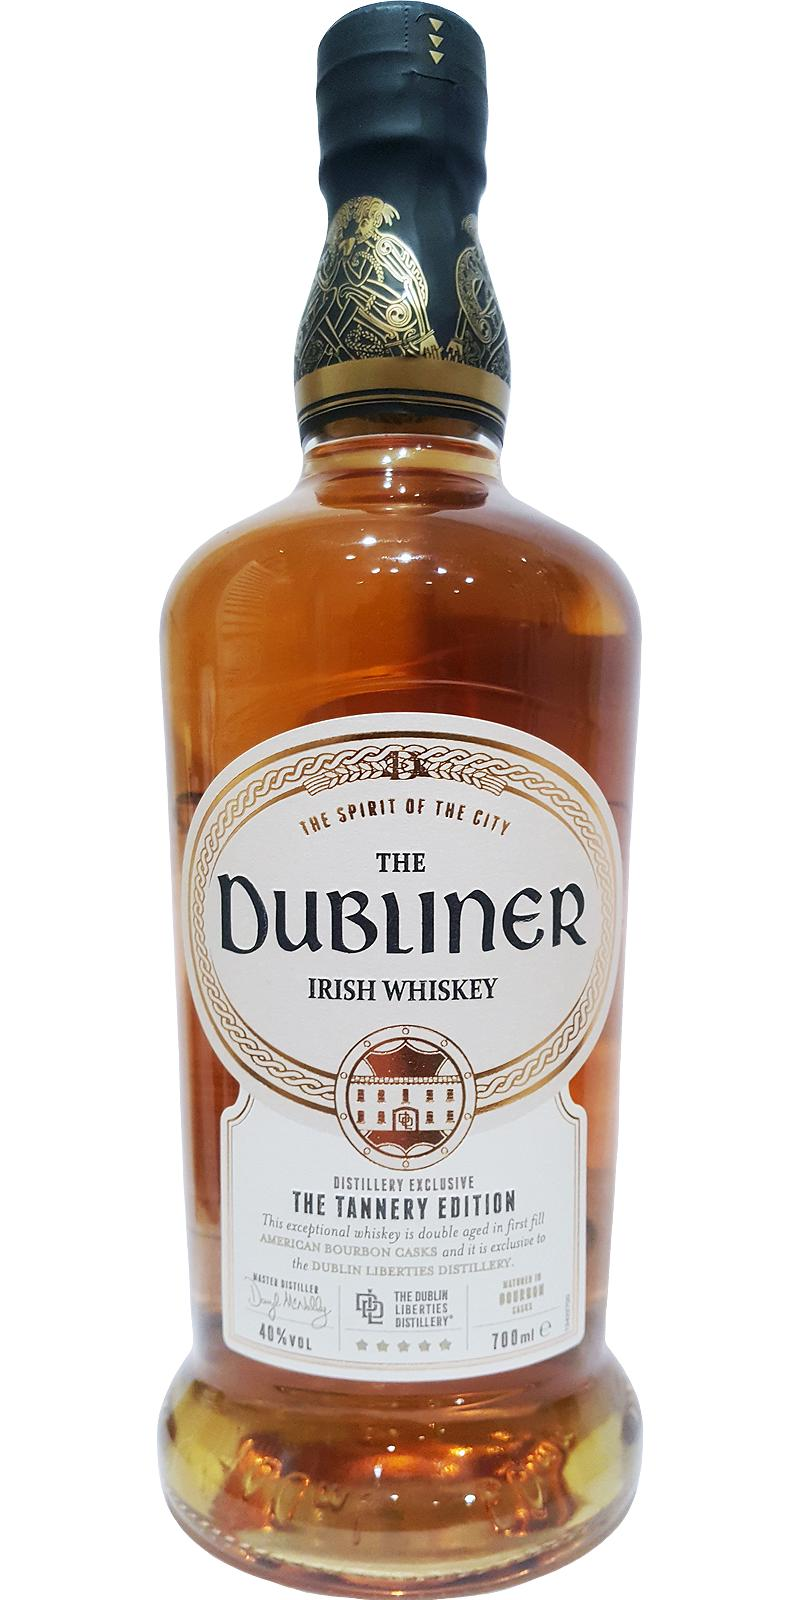 The Dubliner The Tannery Edition